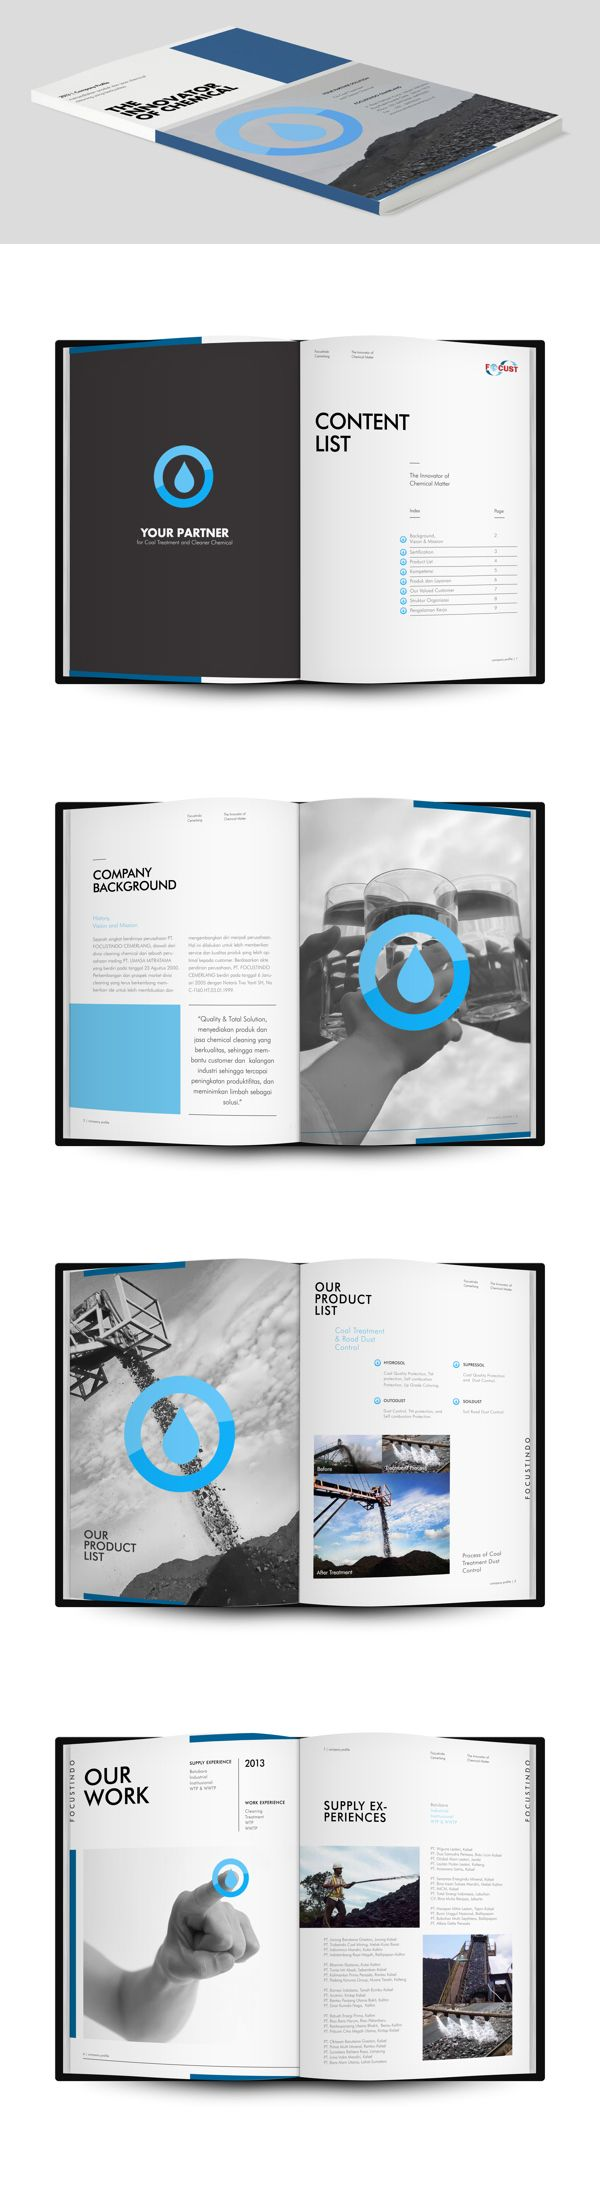 Large Pictures that are b&w with spot color added for emphasis  clean fonts with great use of white space to open up designs and keep content minimal and therefore more easy to digest and take key points from